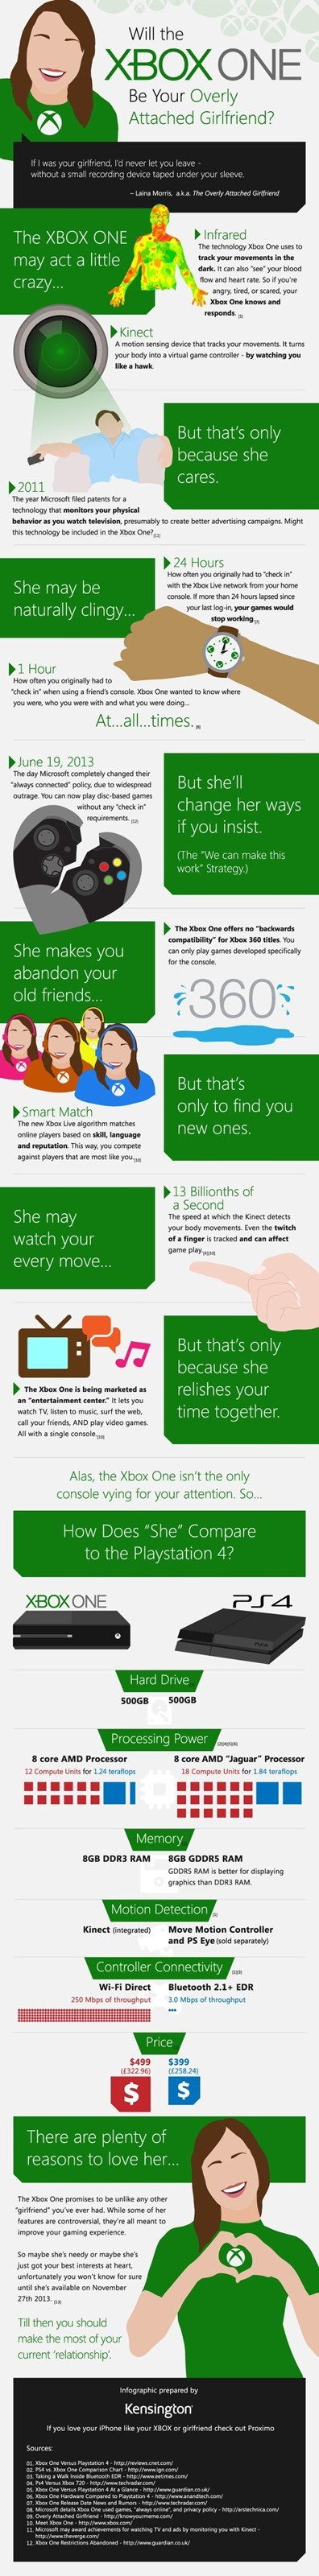 overly attached girlfrend infographic xbox one - 7685167872